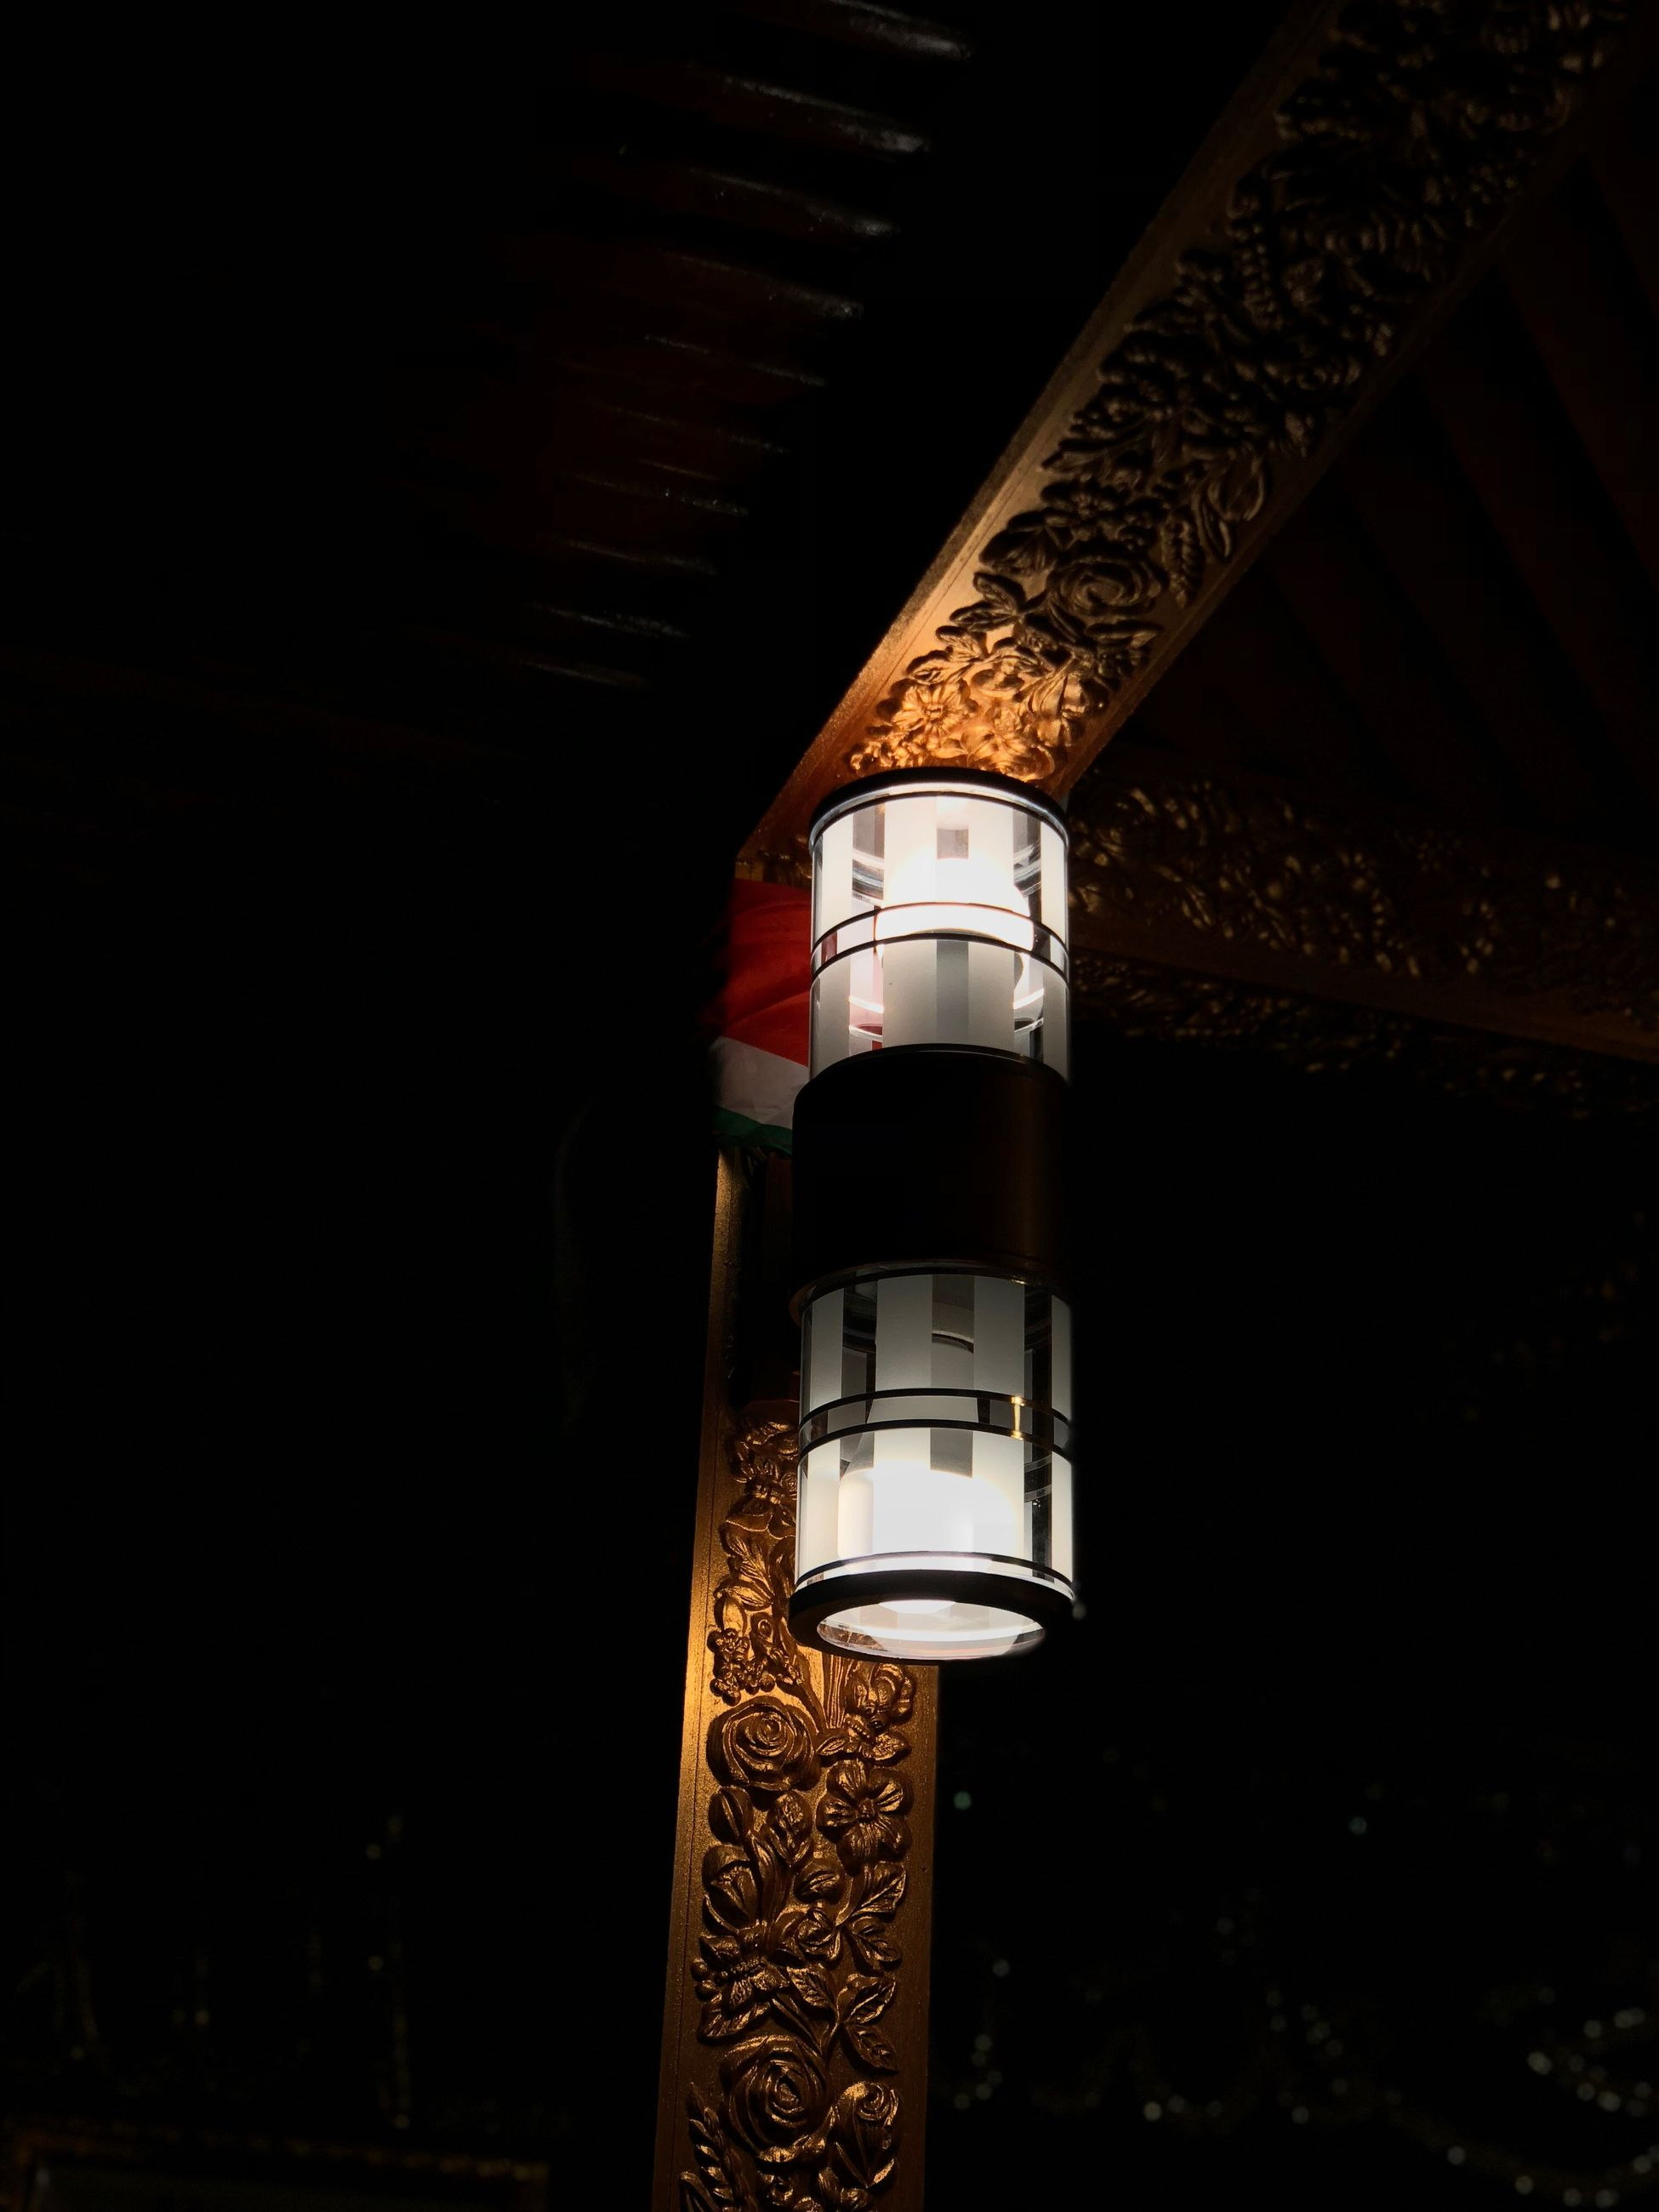 no people, built structure, architecture, illuminated, low angle view, building exterior, night, building, tower, lighting equipment, metal, sky, nature, outdoors, guidance, tall - high, close-up, light - natural phenomenon, factory